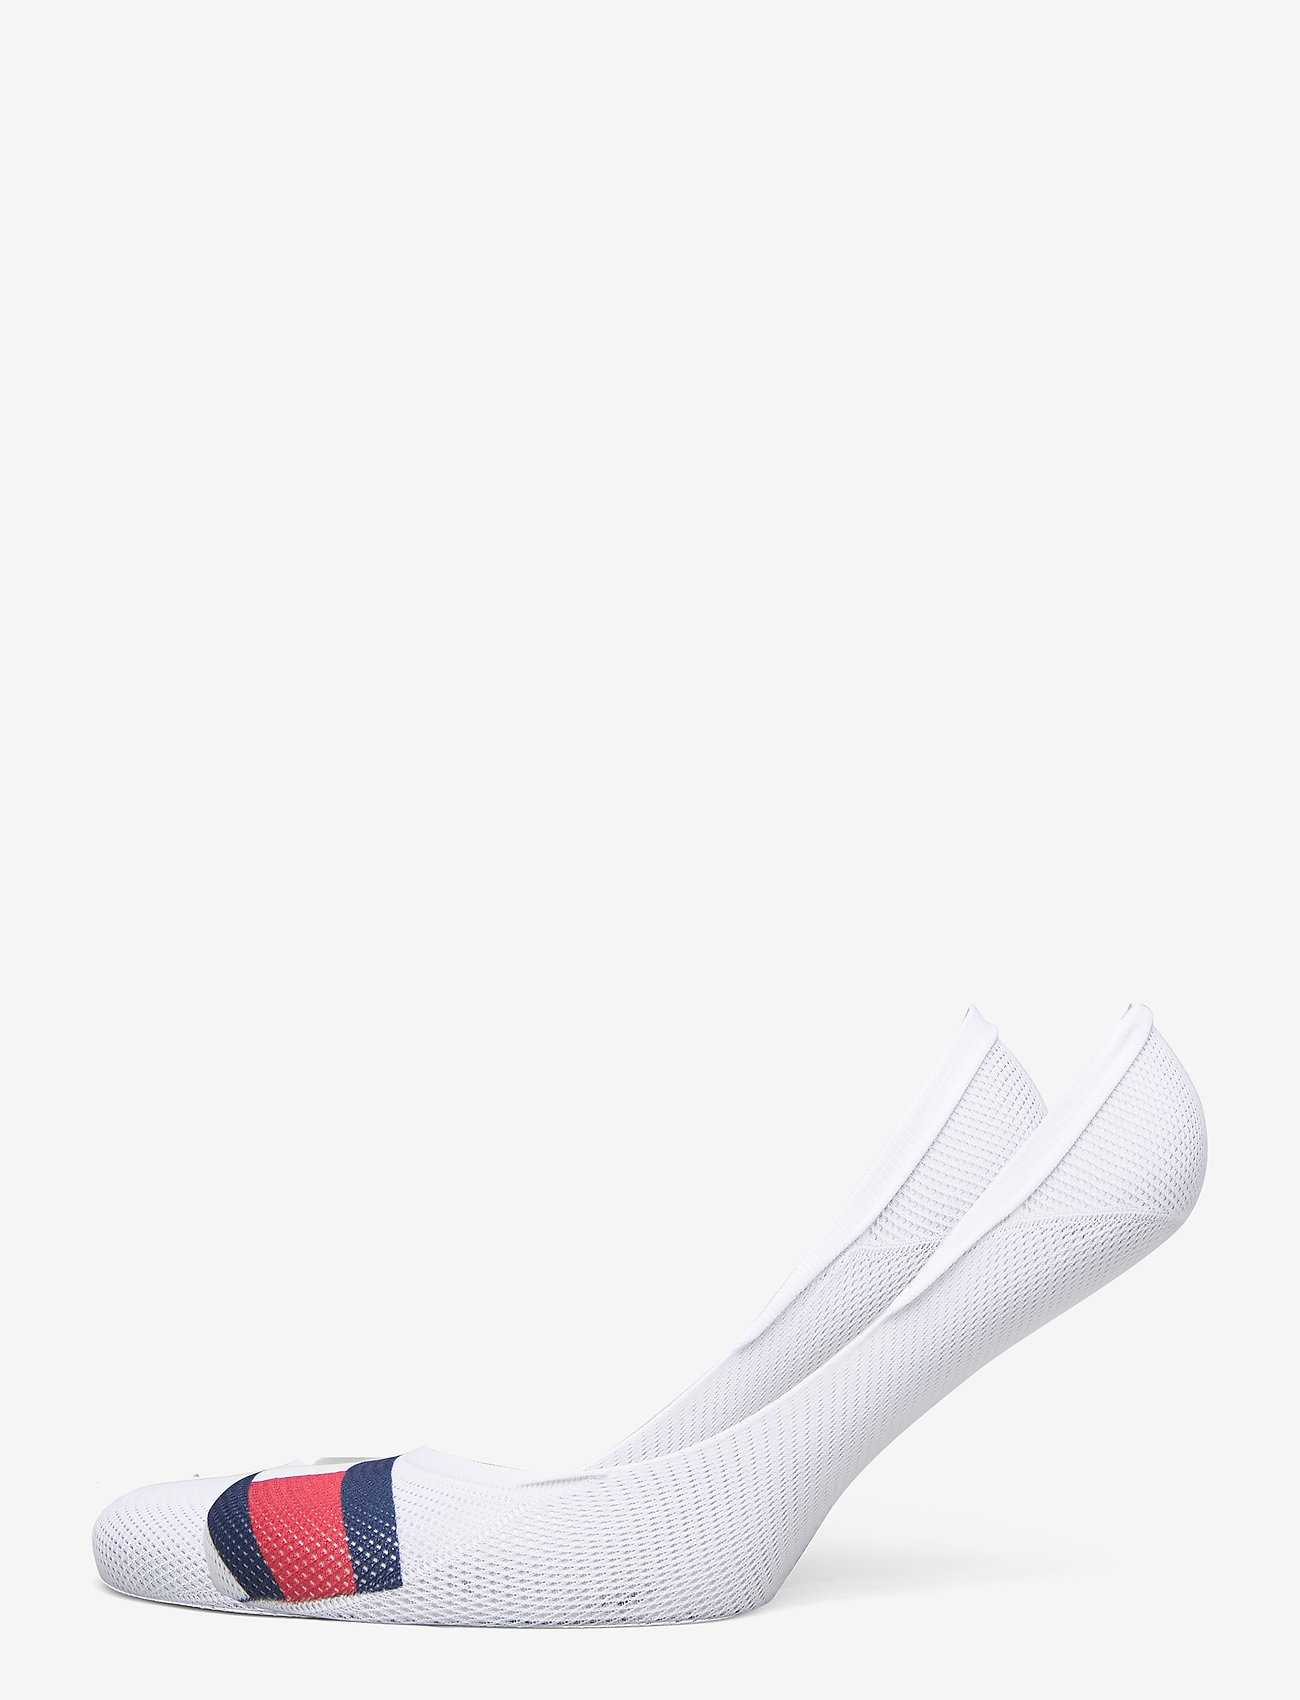 Tommy Hilfiger - TH WOMEN FOOTIE 2P MESH FLAG - footies - white - 0